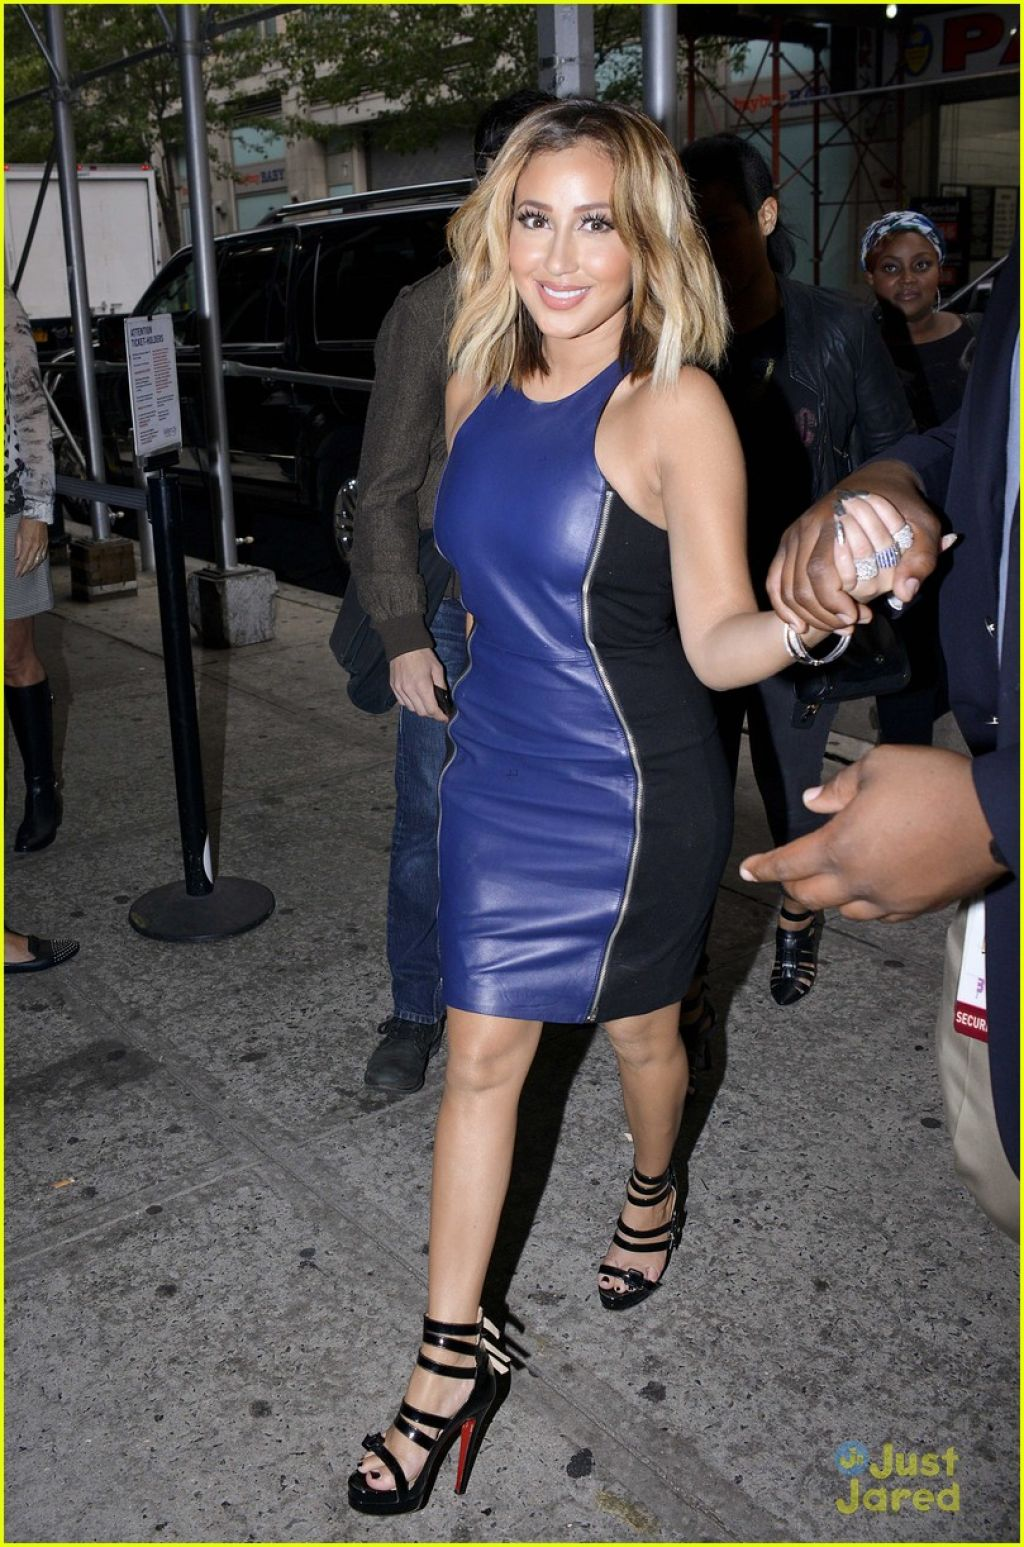 Adrienne Bailon Photos - Leaving The Wendy Williams Show